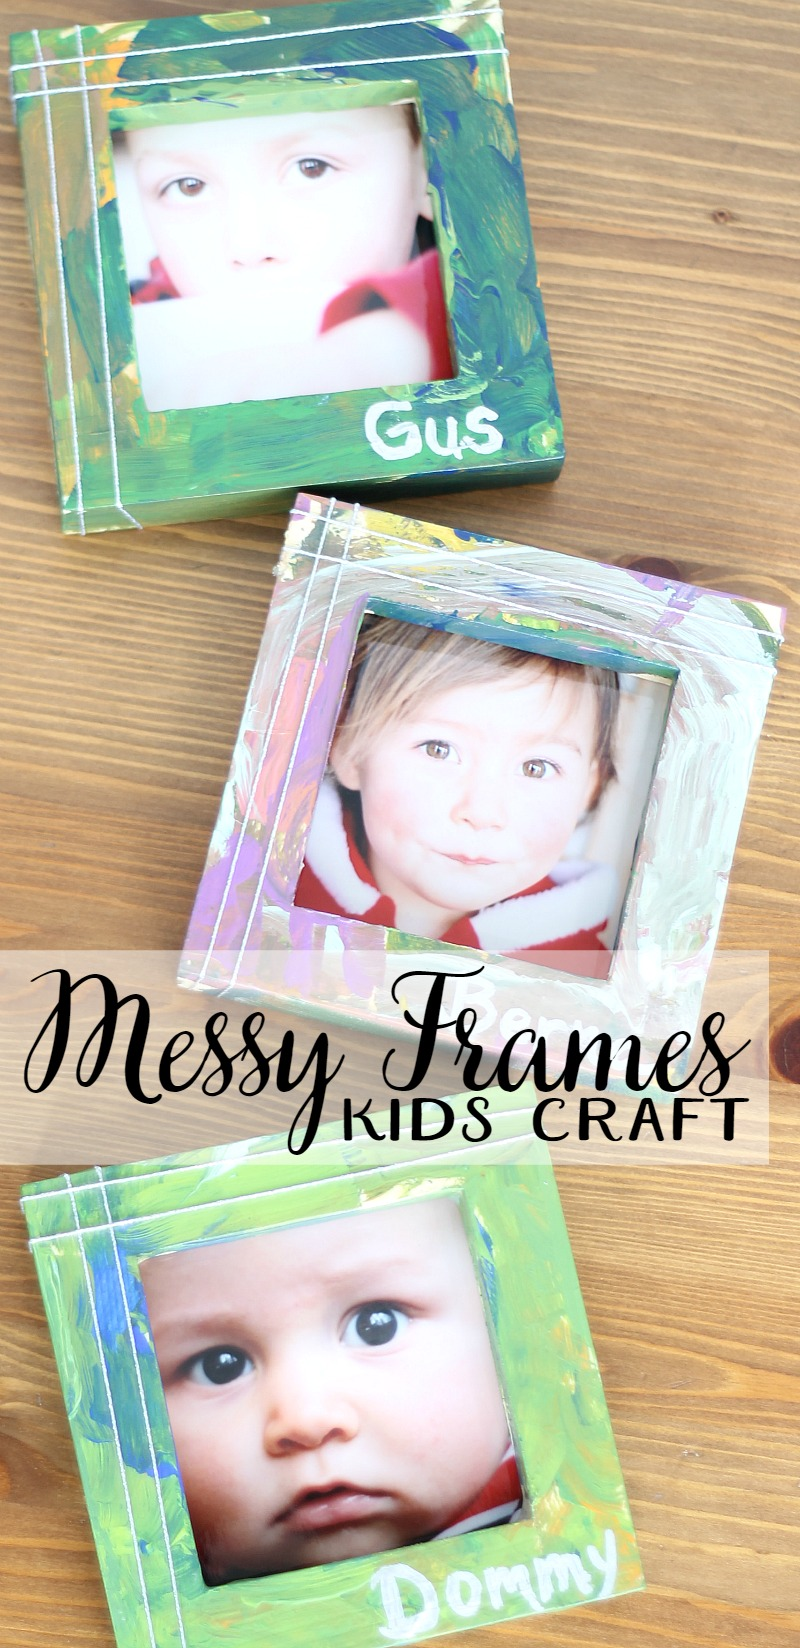 messy frames kids craft